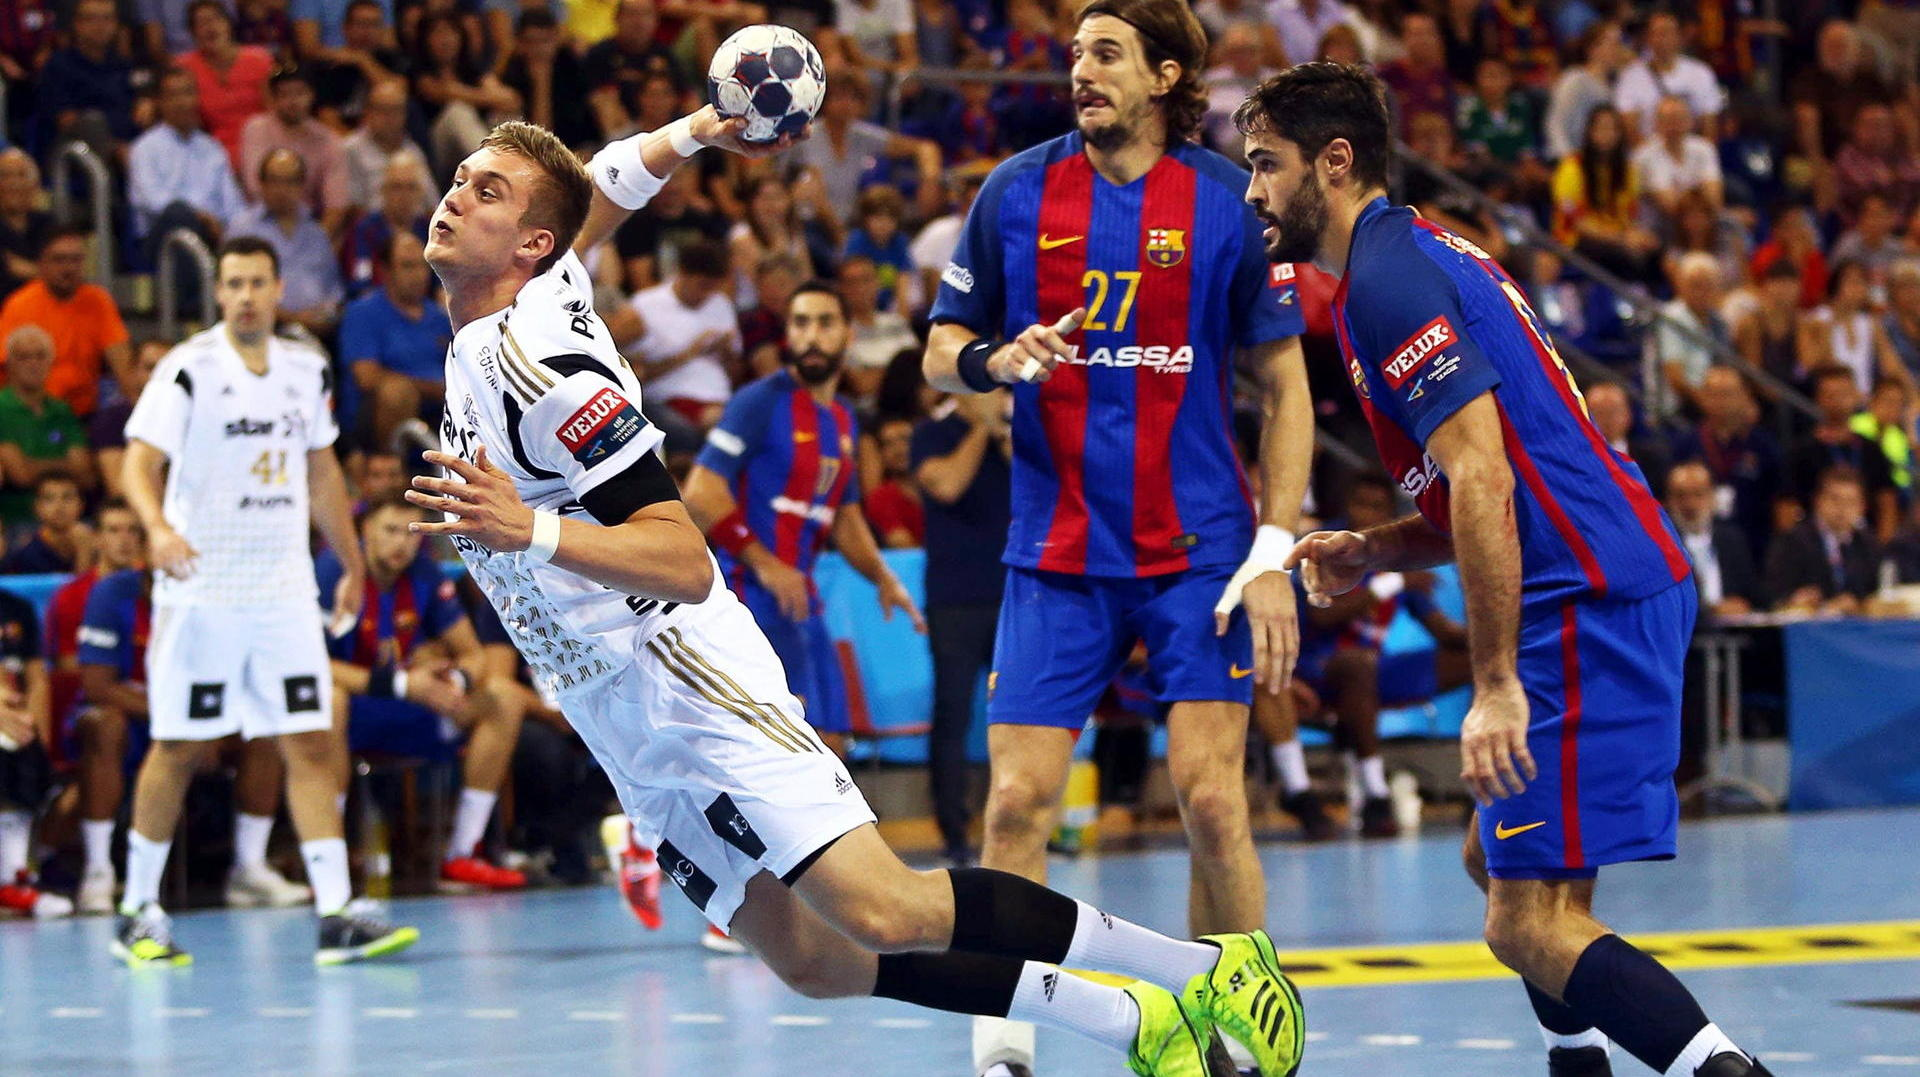 handball champions league ergebnisse